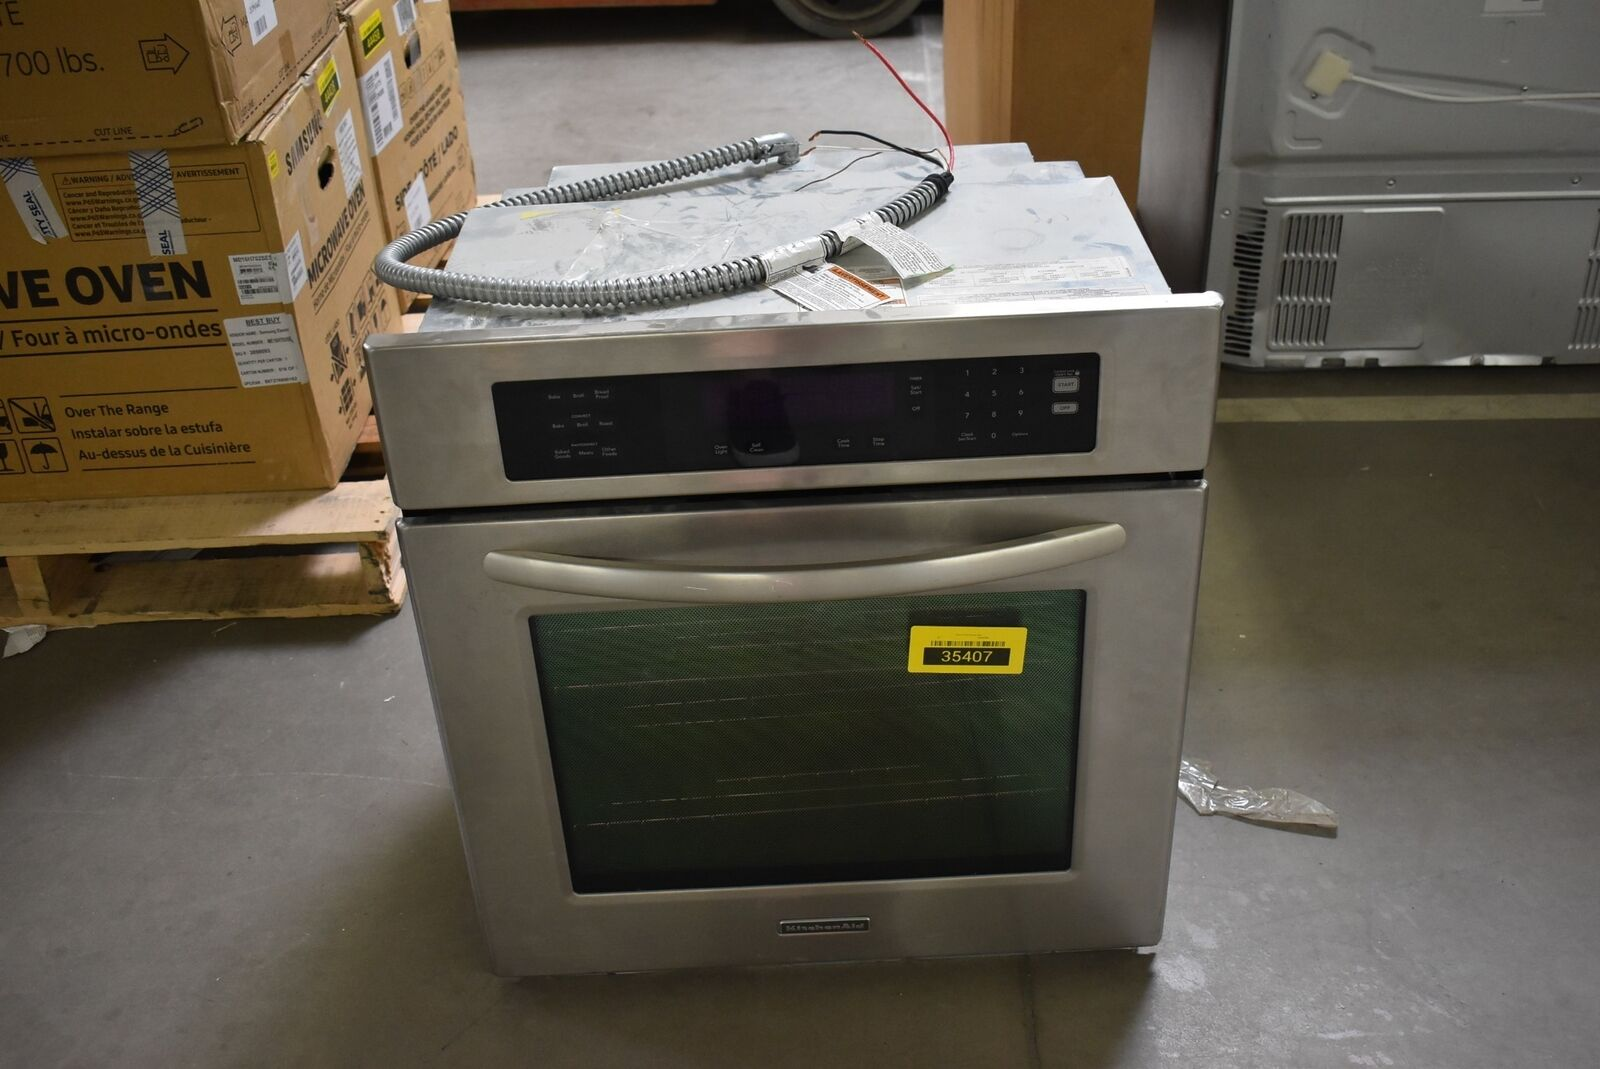 """Micro Onde Au Dessus Du Four kitchenaid kebs177sss 27"""" stainless single electric wall oven nob #35407 hrt"""